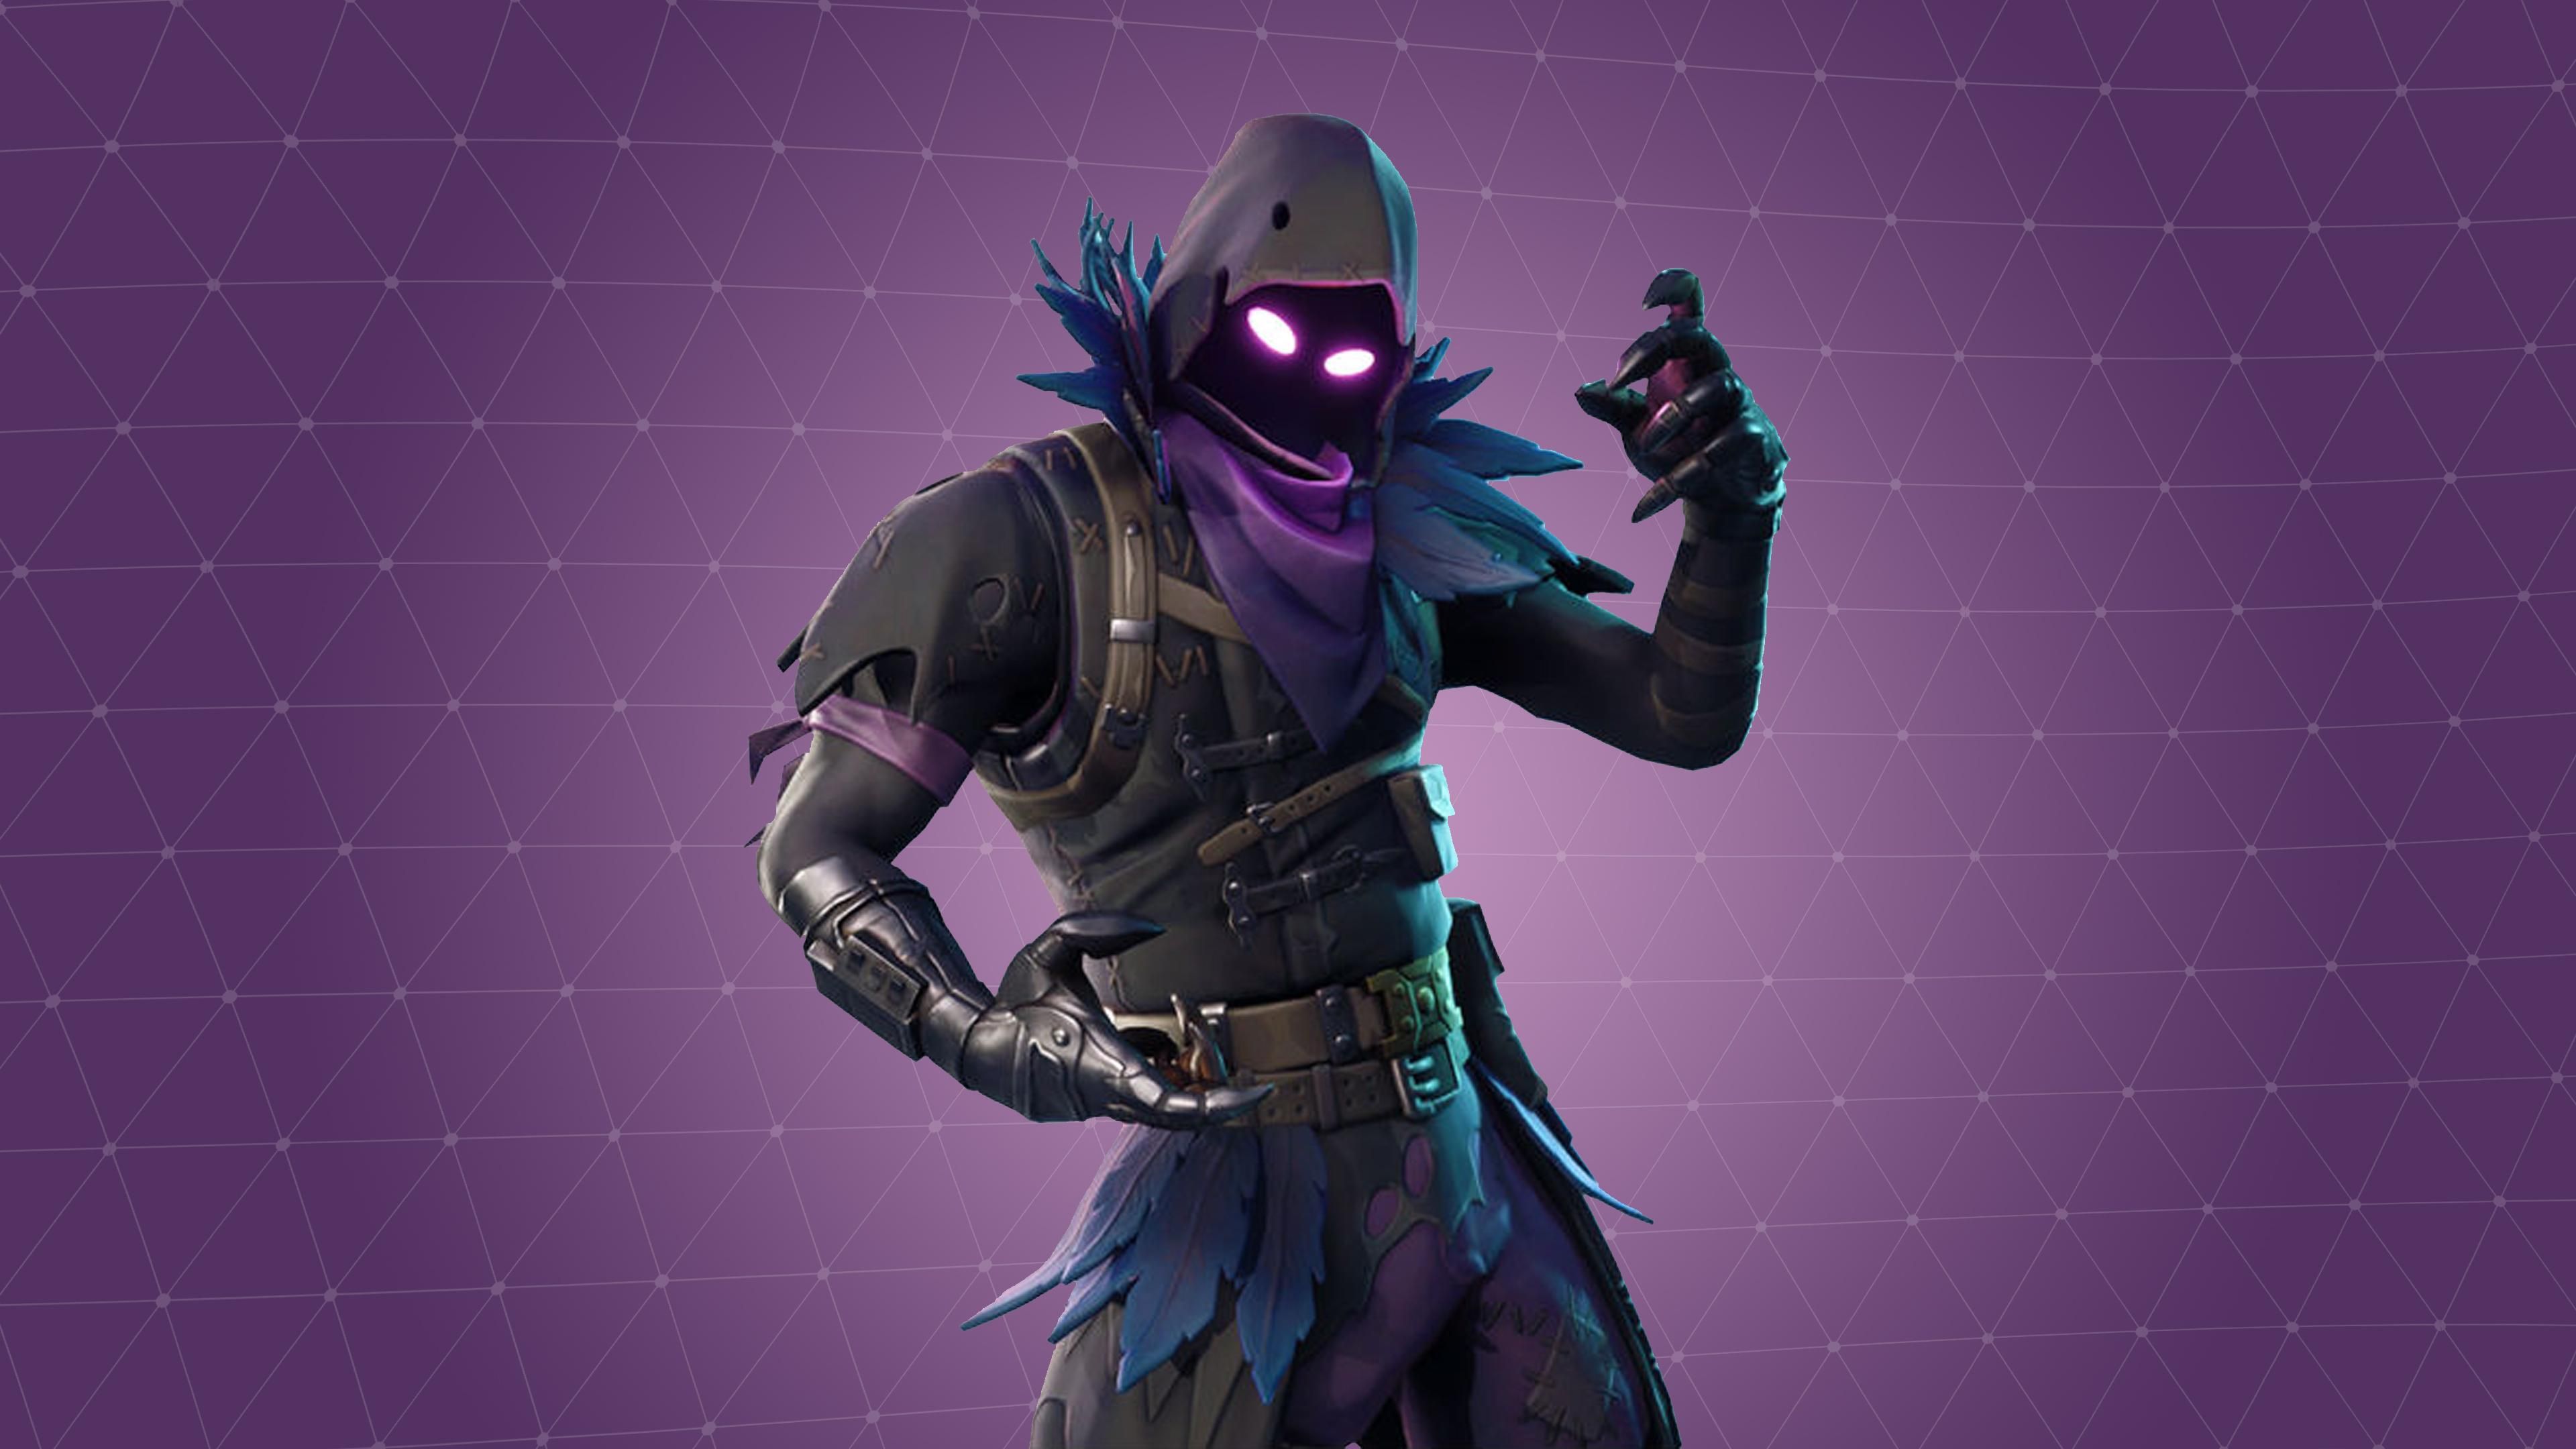 Fortnite Raven Skin Wallpaper Background 63808 3840x2160px 3840x2160